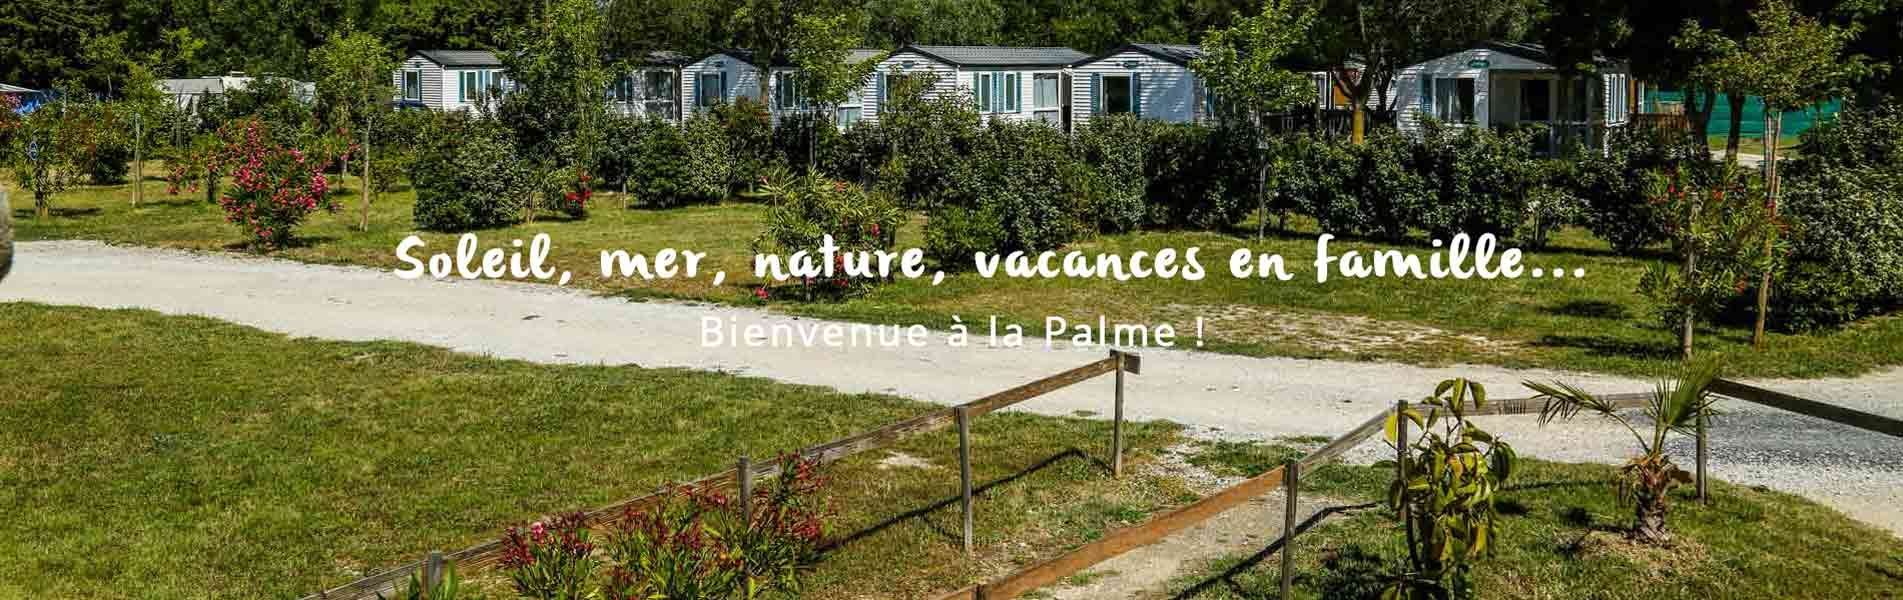 Camping Port Mer 3 Star Campsite Languedoc Discover The Area Of La Palme